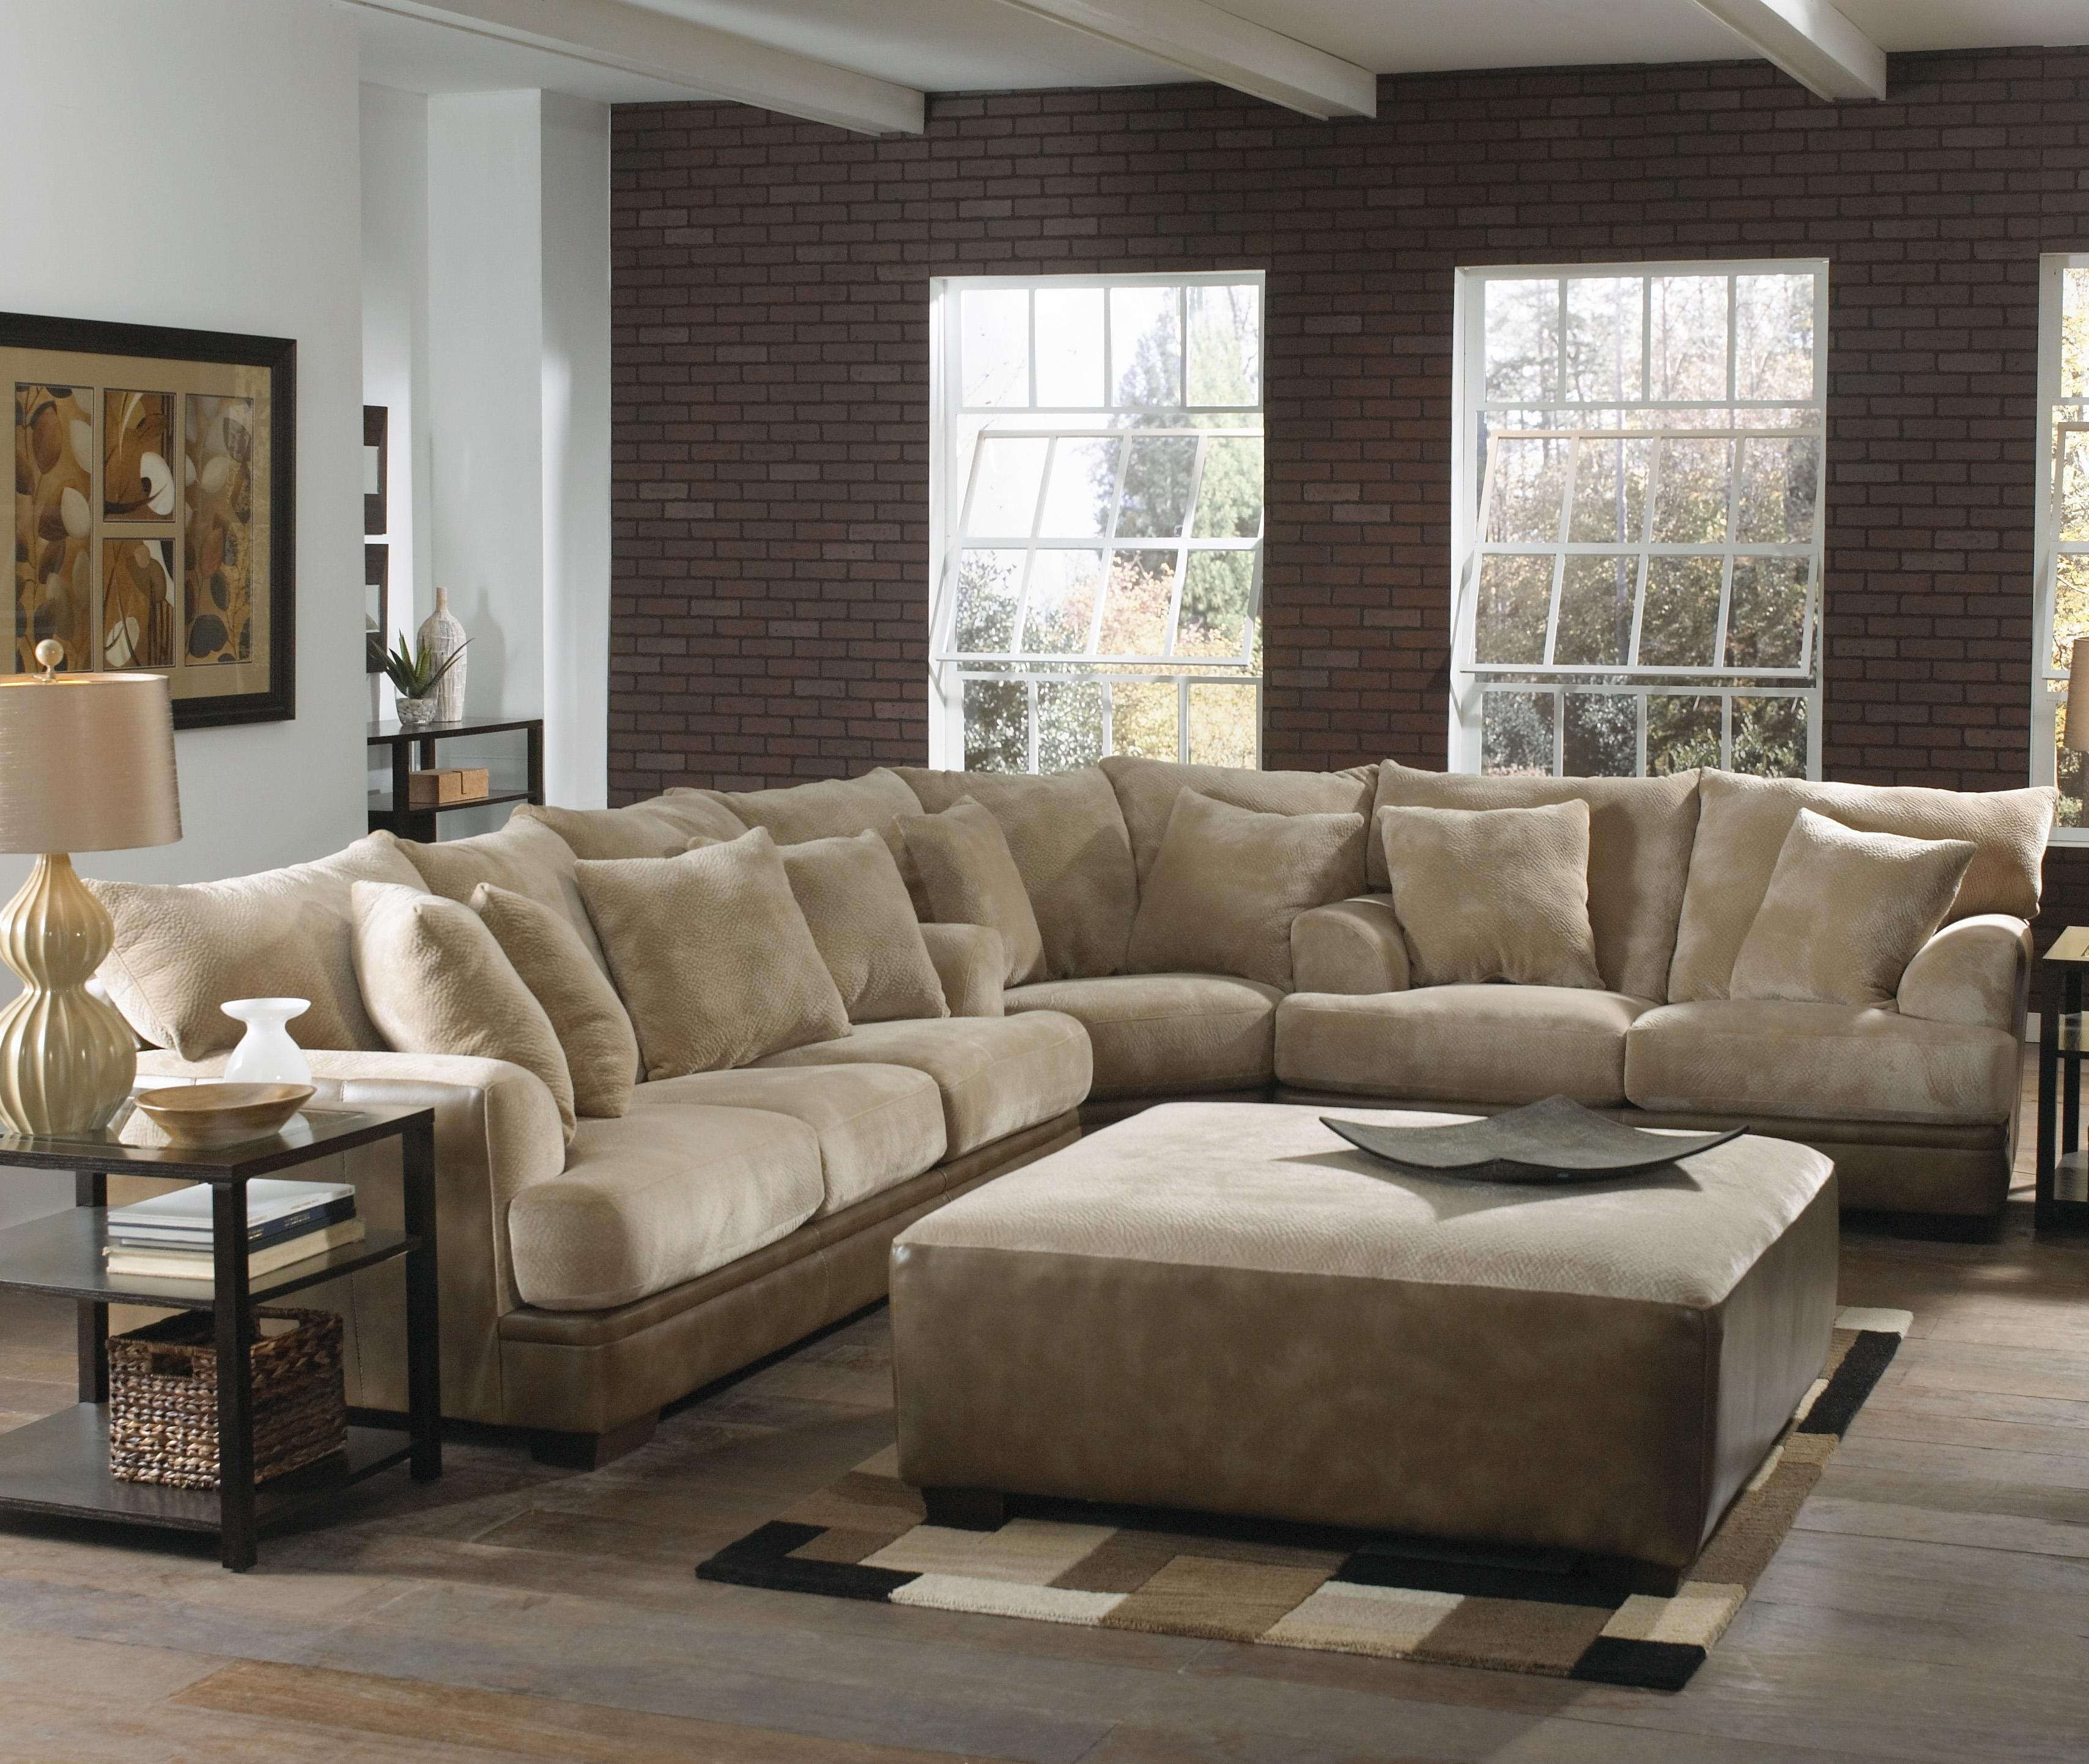 Pinsofascouch On Living Room Sofa | Pinterest | Sofa, Furniture Inside Norfolk Chocolate 3 Piece Sectionals With Laf Chaise (View 25 of 25)